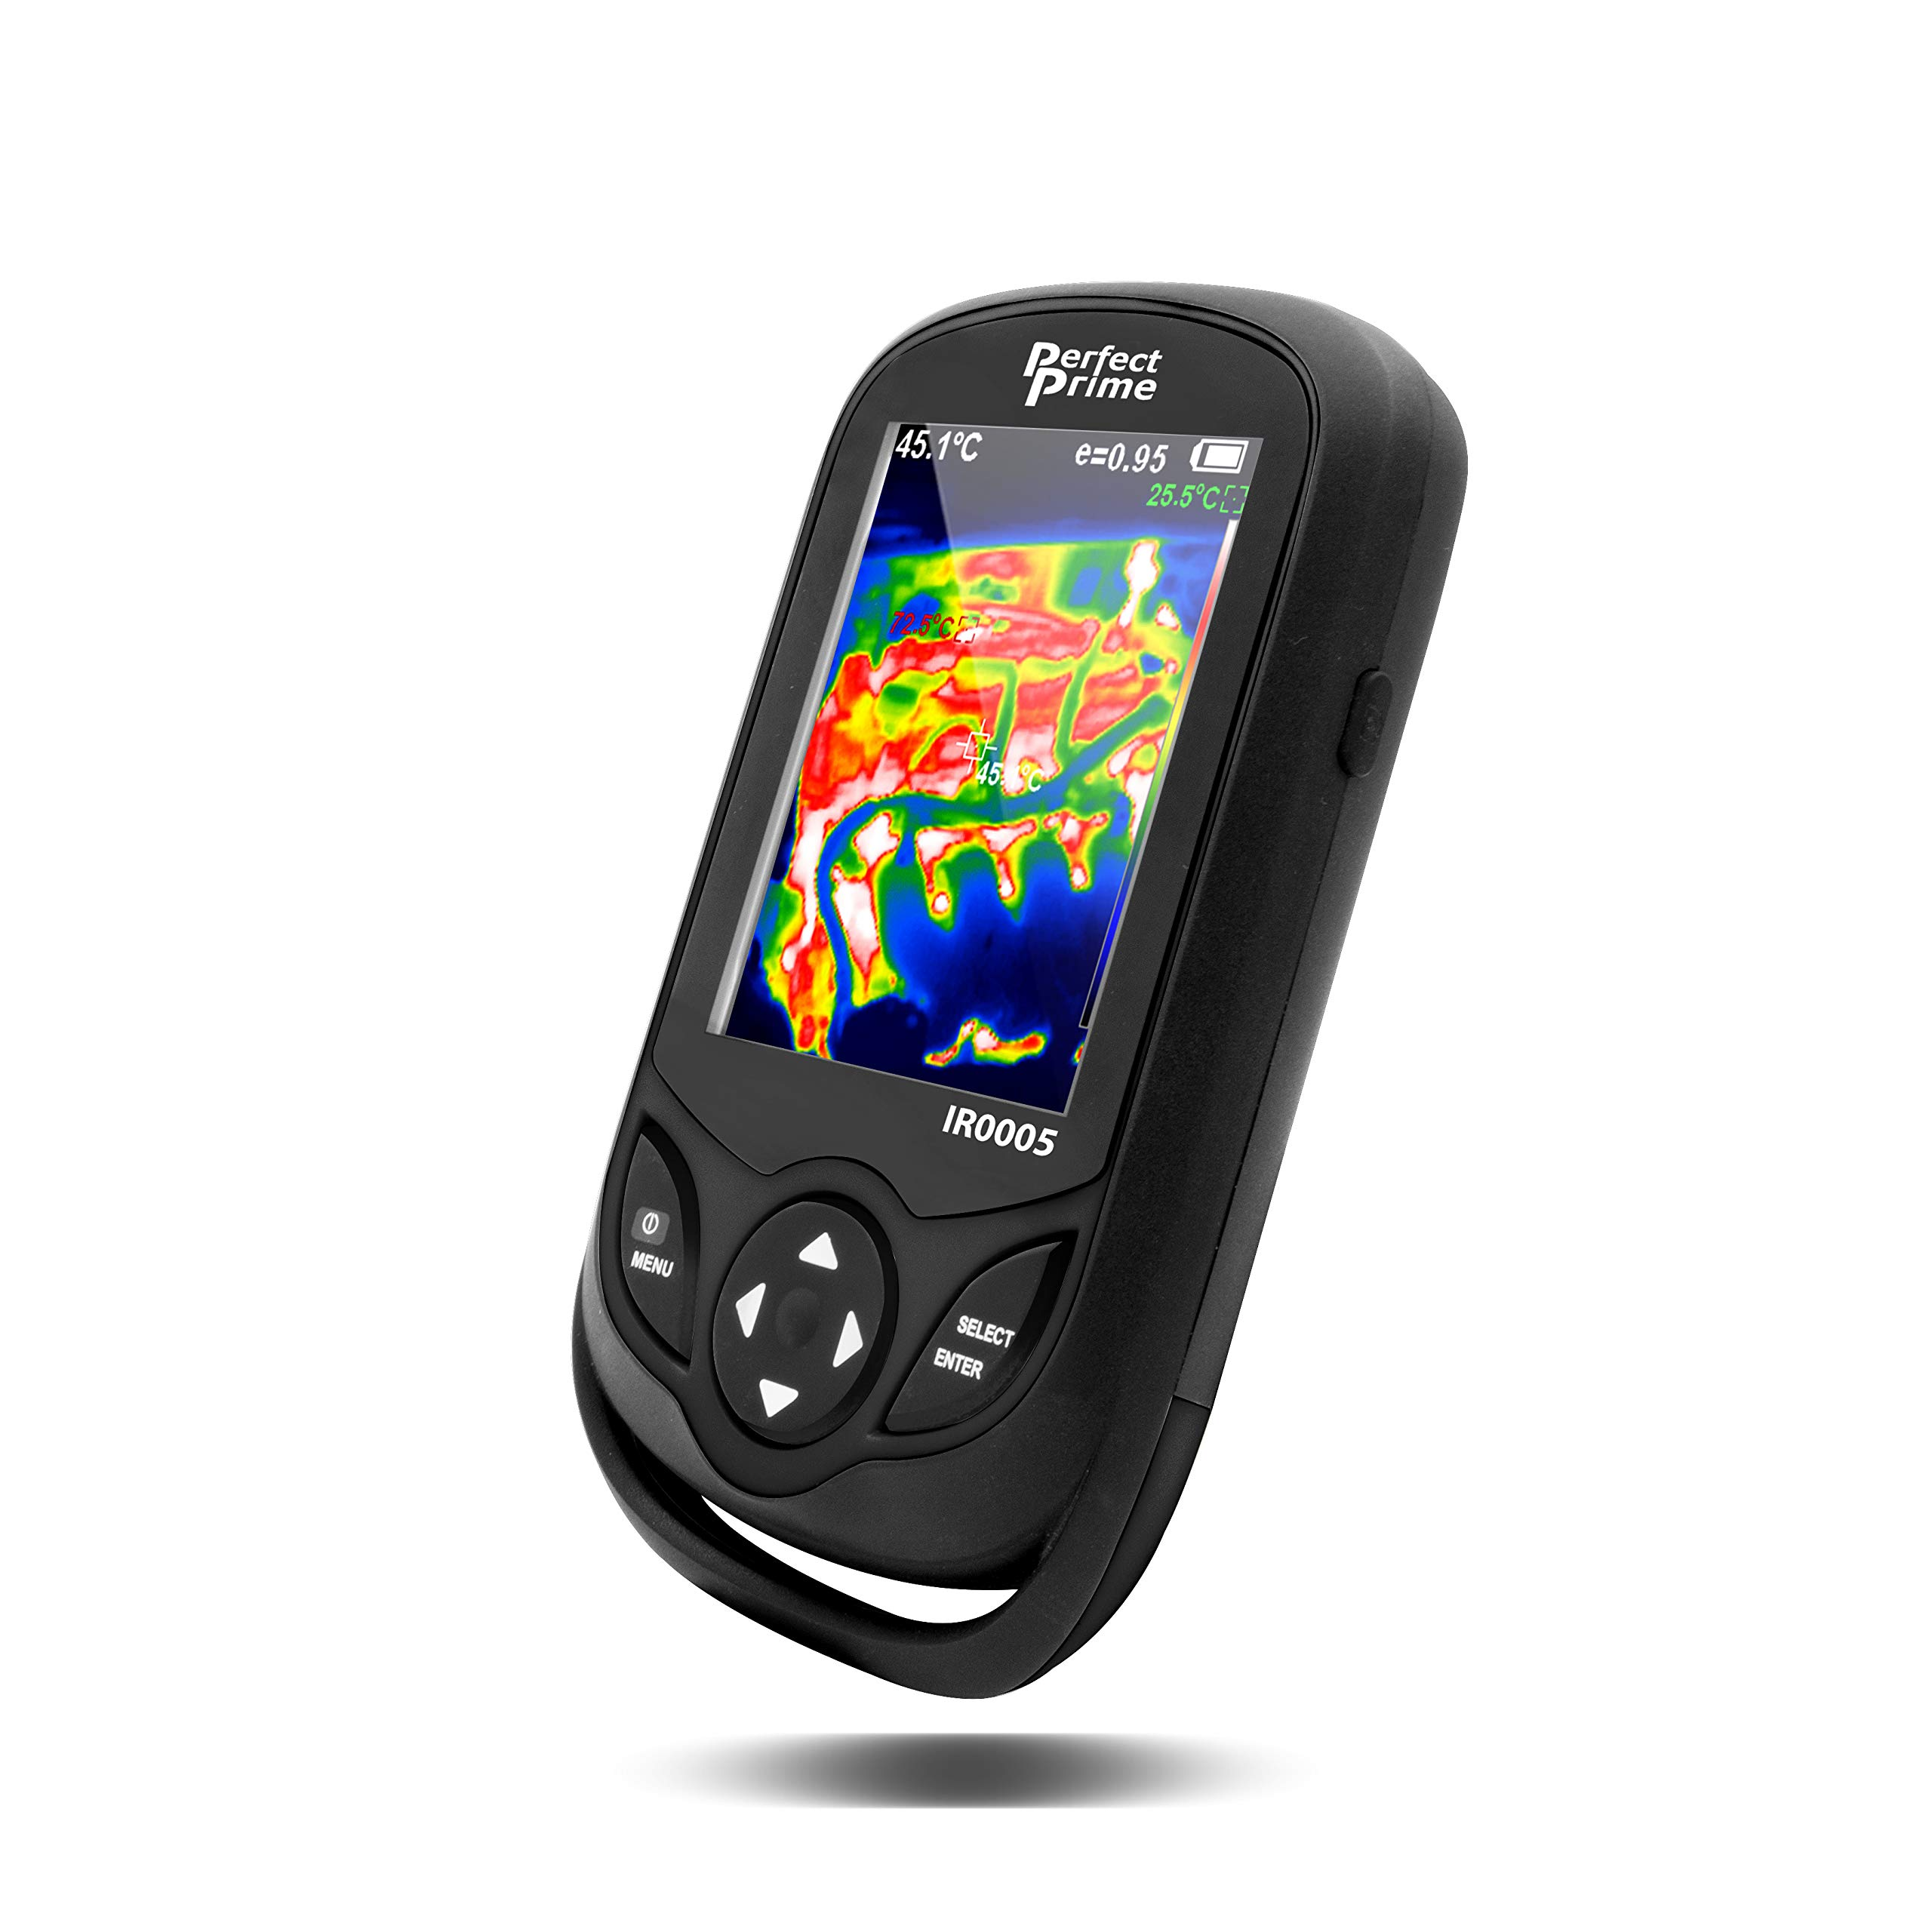 PerfectPrime IR0005, Infrared (IR) Thermal Imager & Visible Light Camera with IR Resolution 35,200 Pixels & Temperature Range from -4~572°F, 9 Hz Refresh Rate